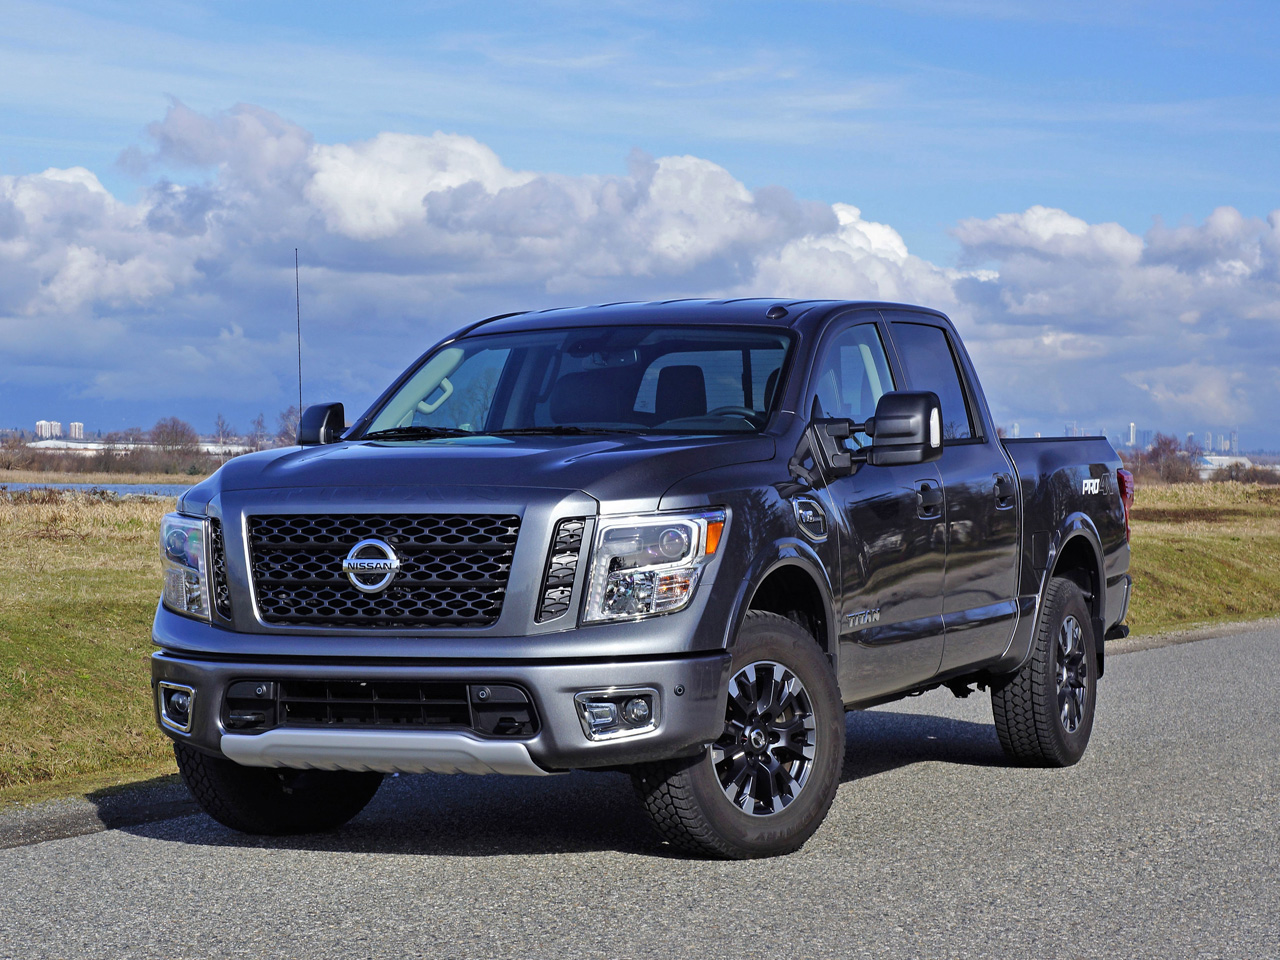 2017 nissan titan crew cab pro 4x road test carcostcanada. Black Bedroom Furniture Sets. Home Design Ideas